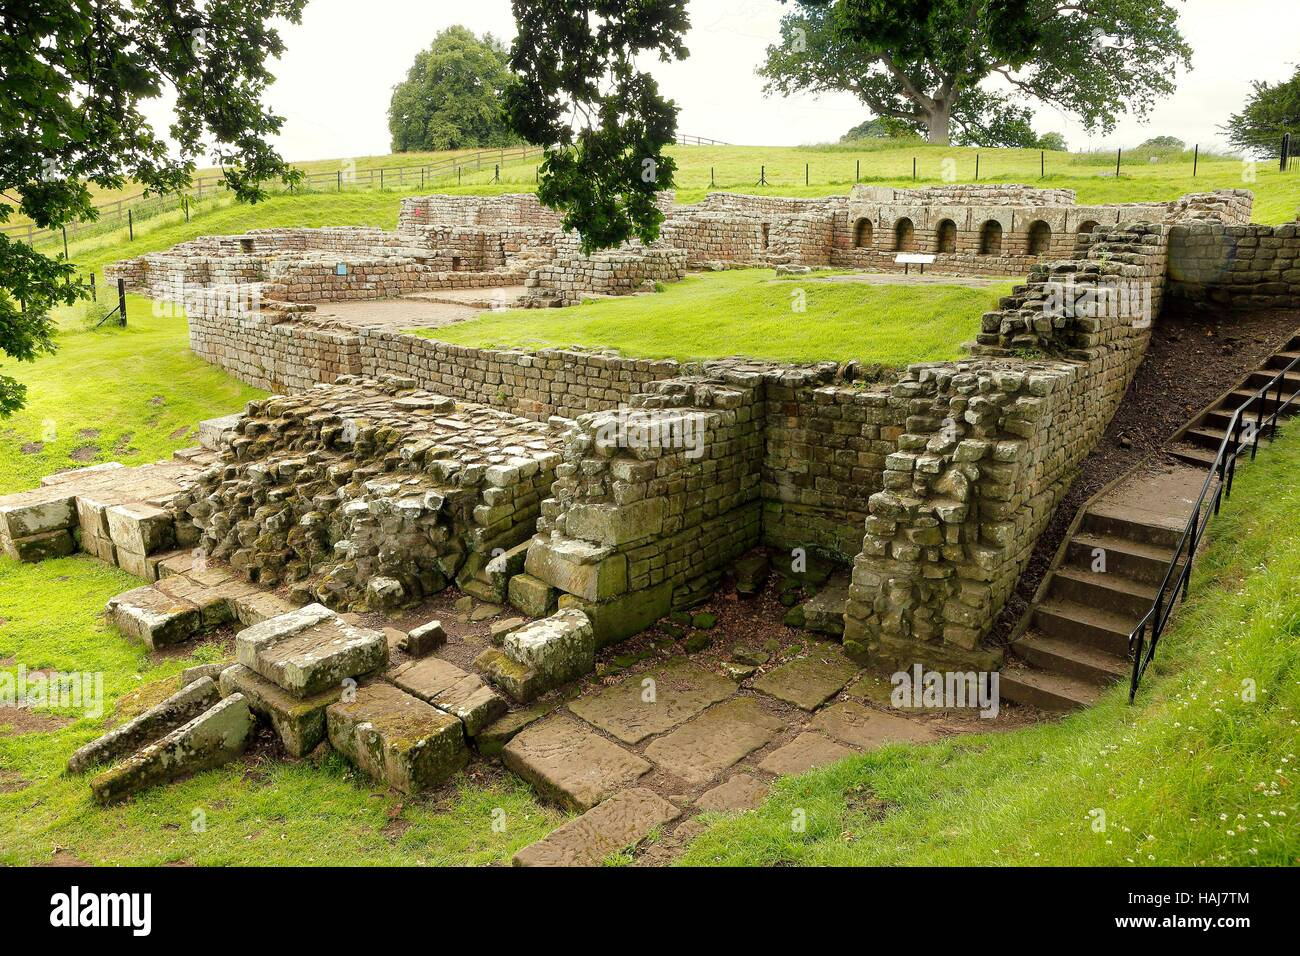 Chesters Roman Fort and Museum bathhouse. Chollerford, Hexham, Northumberland, England, United Kingdom, Europe. - Stock Image